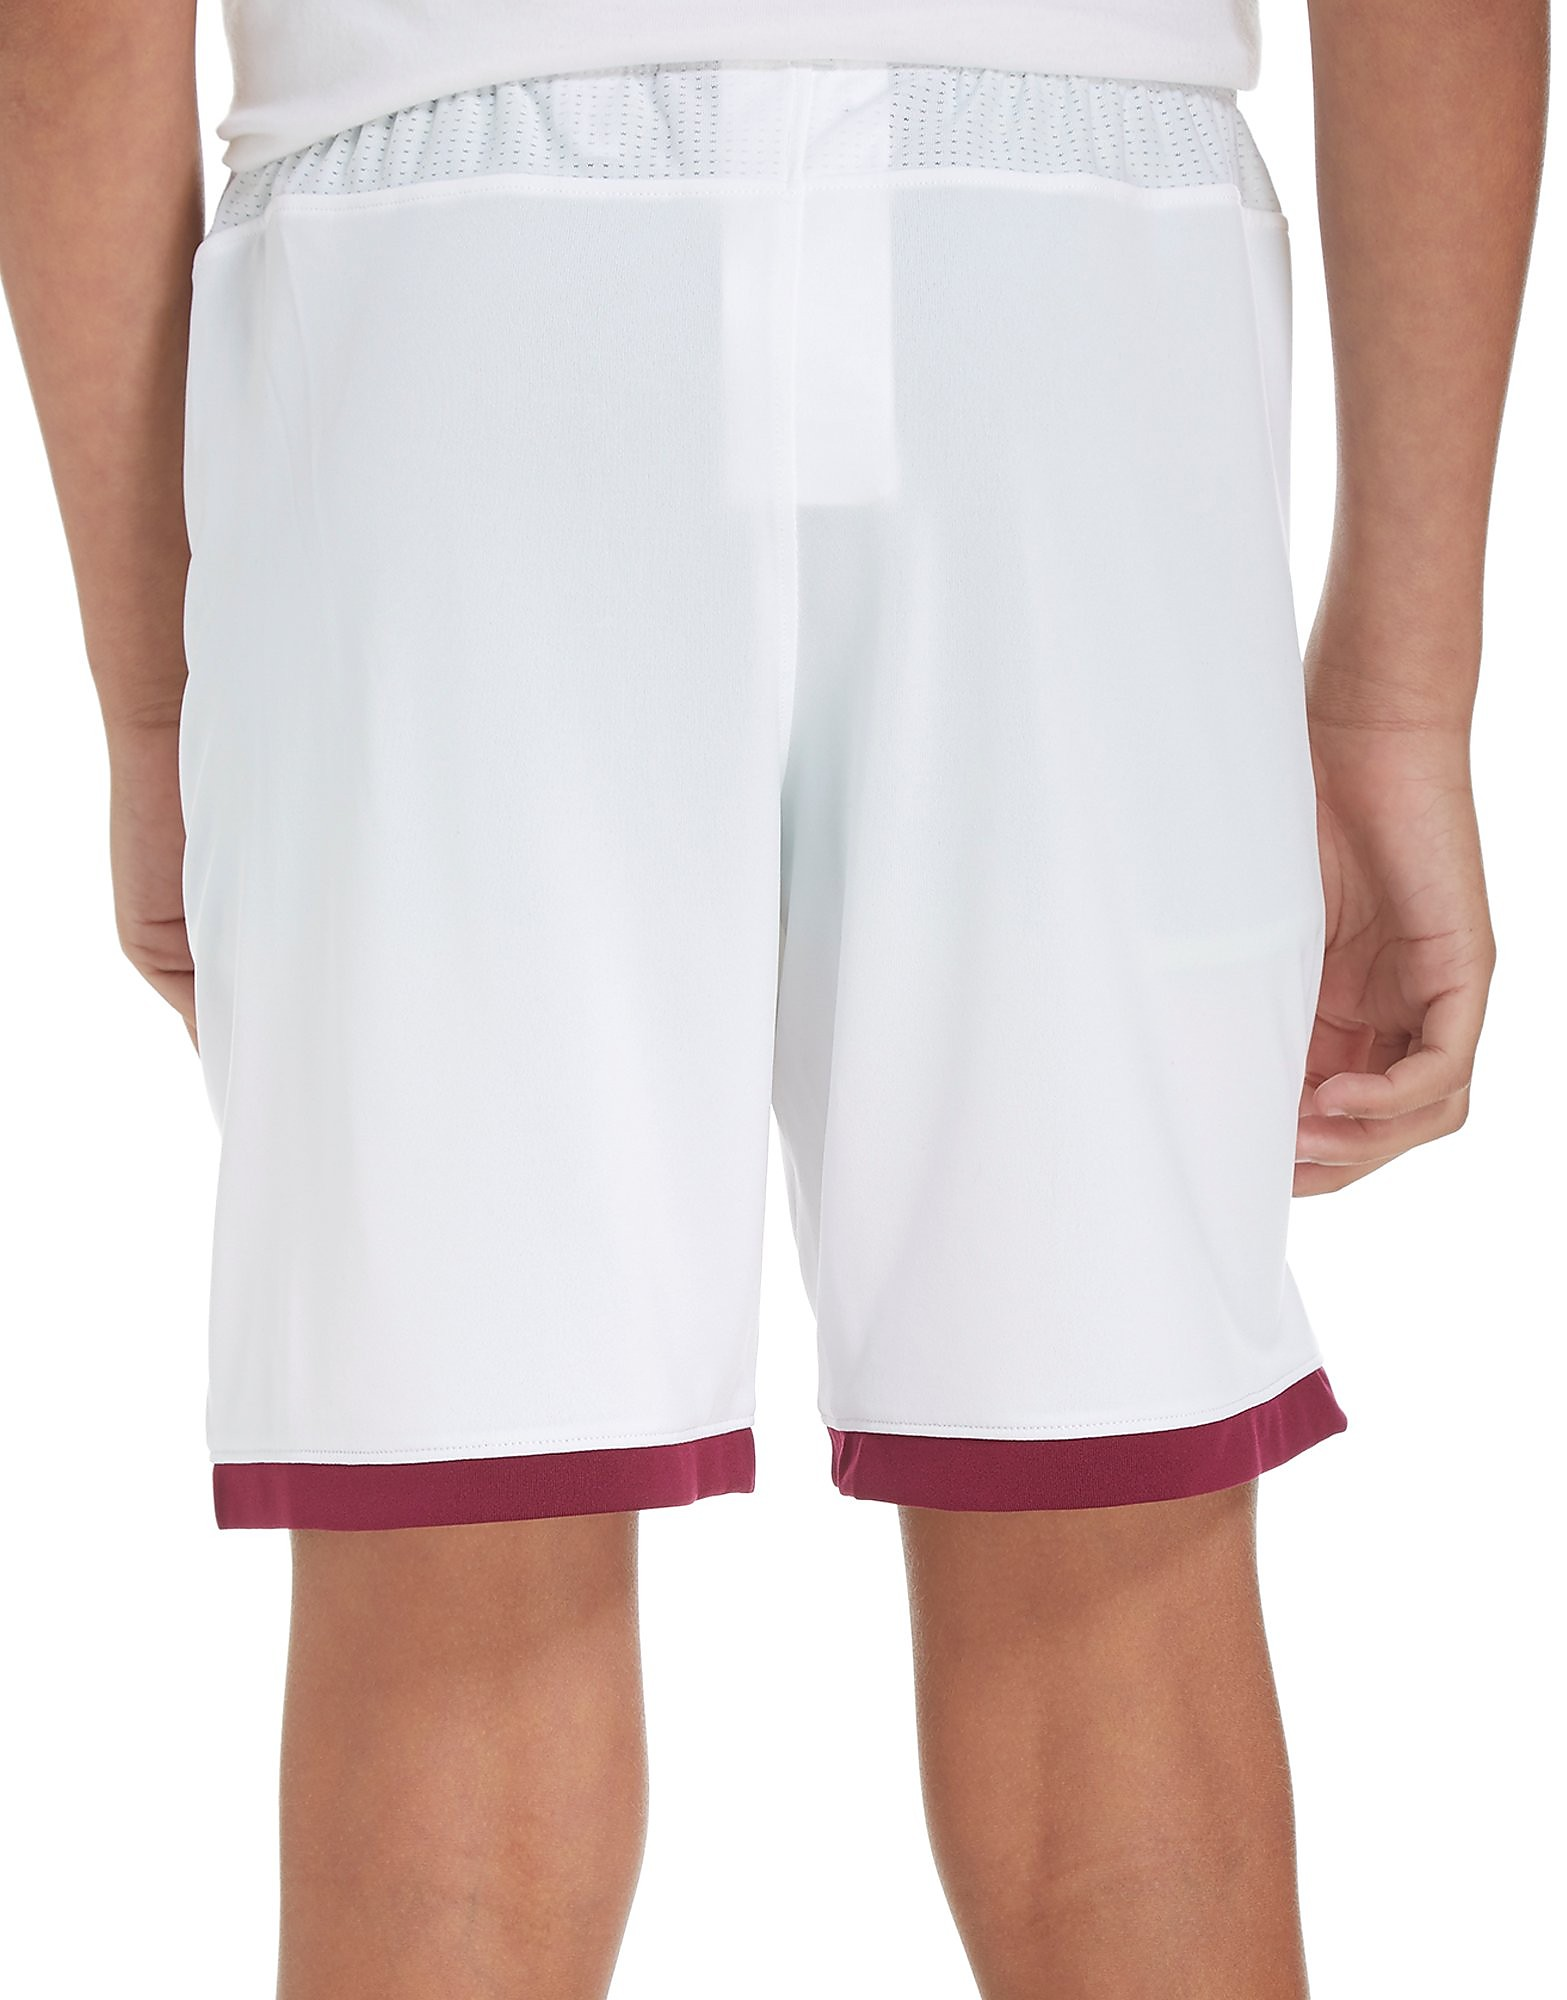 Under Armour Aston Villa FC 2017/18 Home Shorts Junior